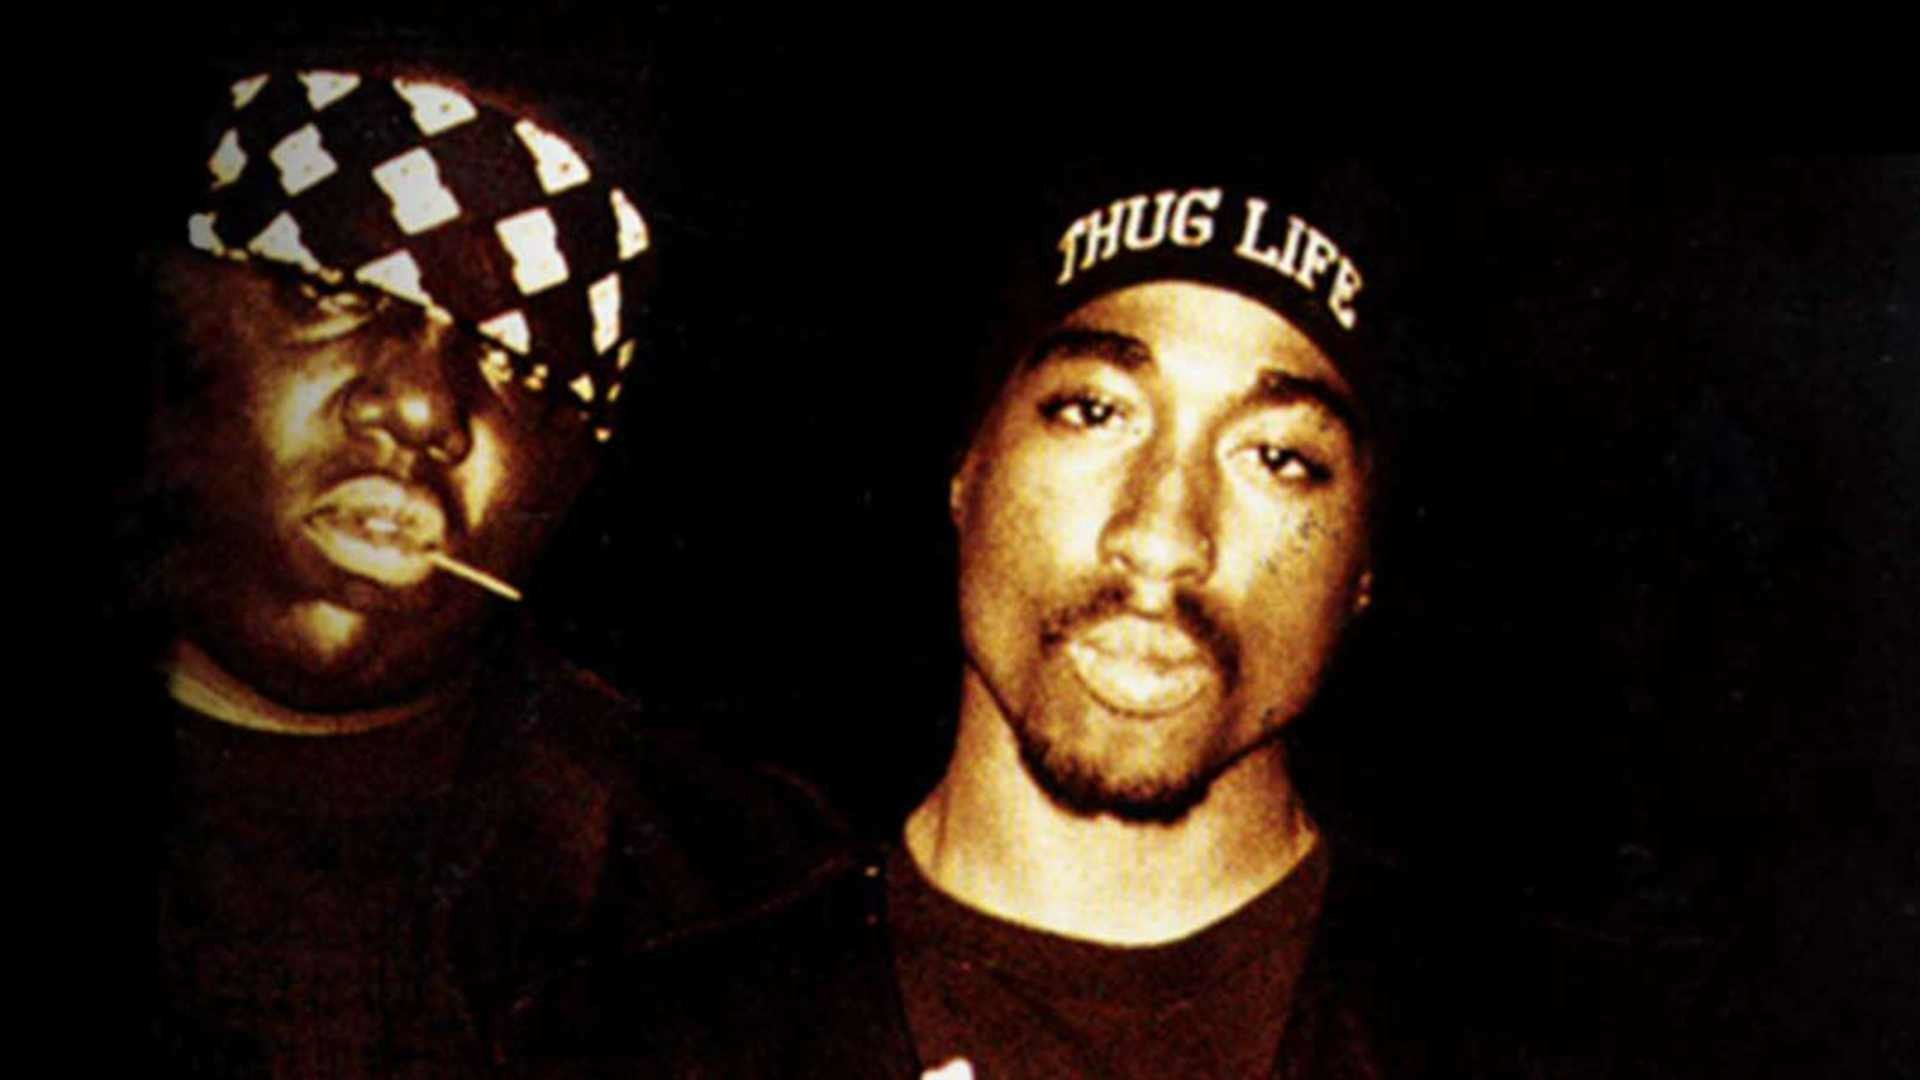 Biggie and tupac pictures BBC NEWS Country Profiles